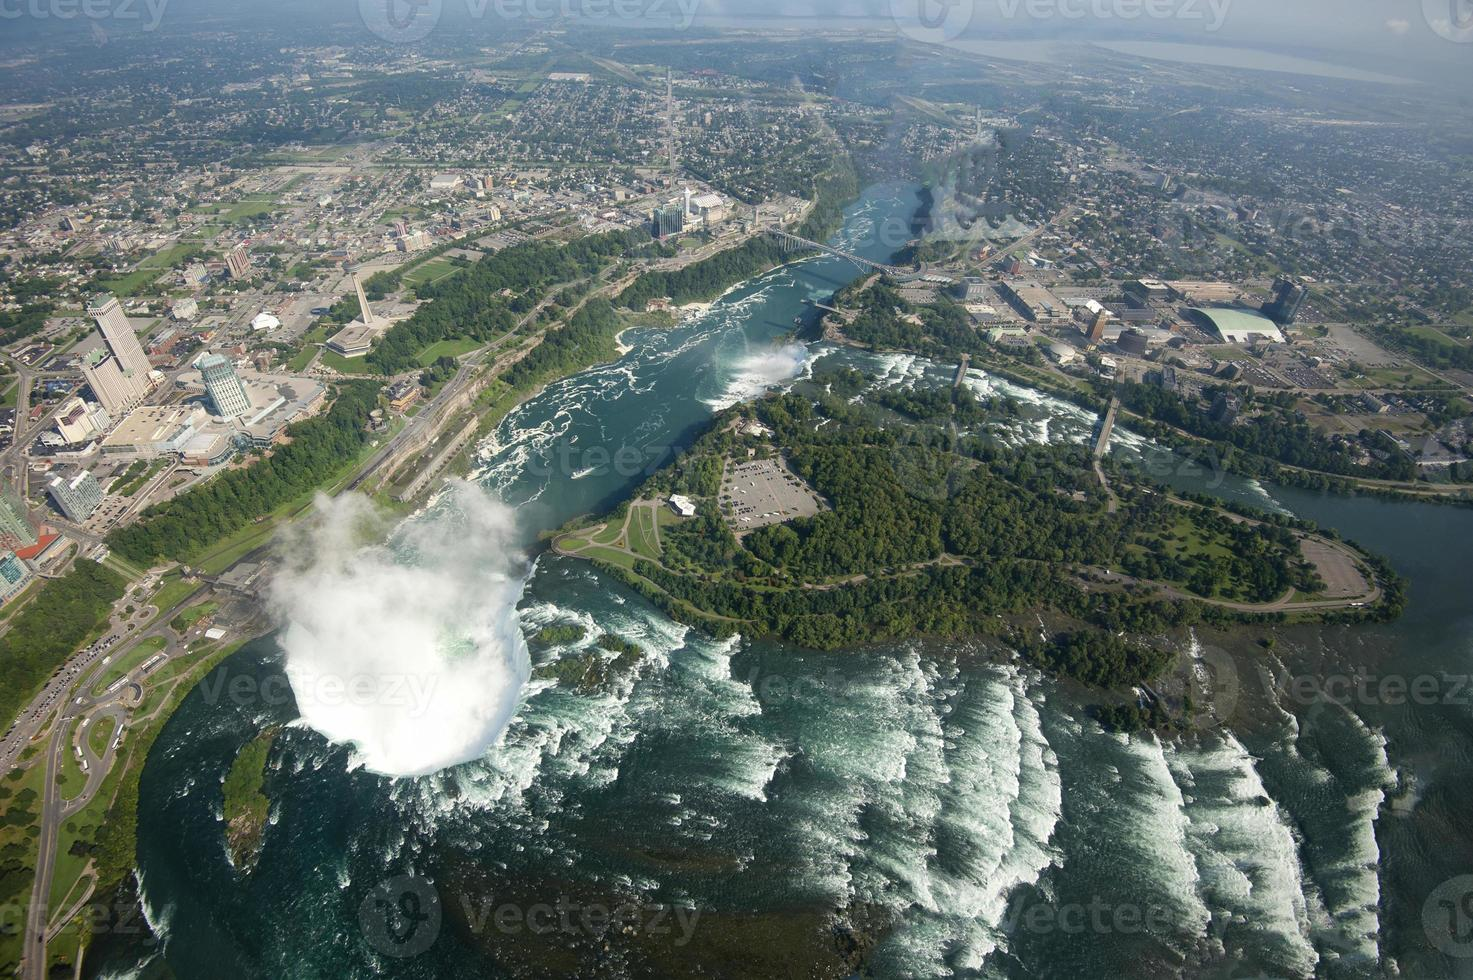 Niagara Falls area viewed from helicopter photo